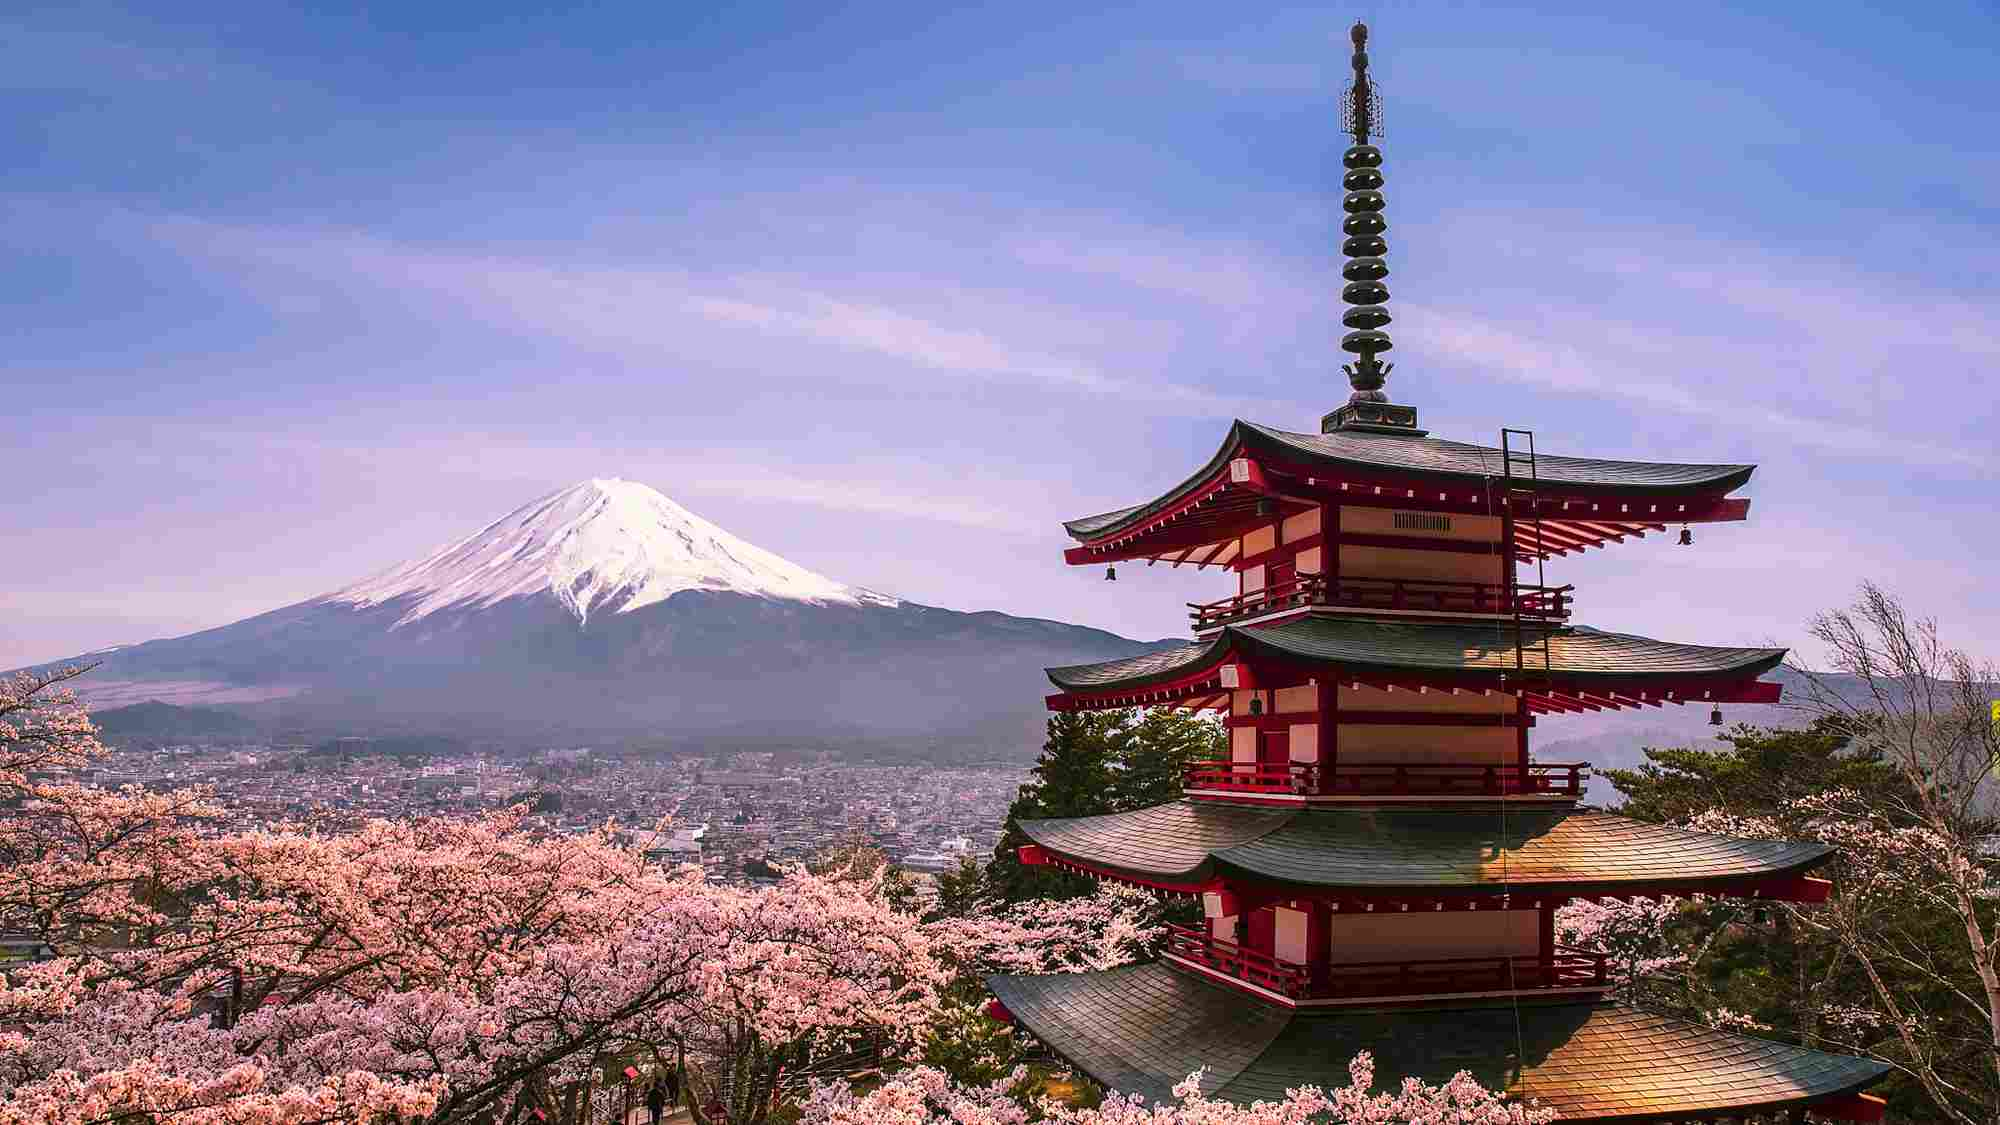 Japan to relax visa policies for Chinese visitors next year